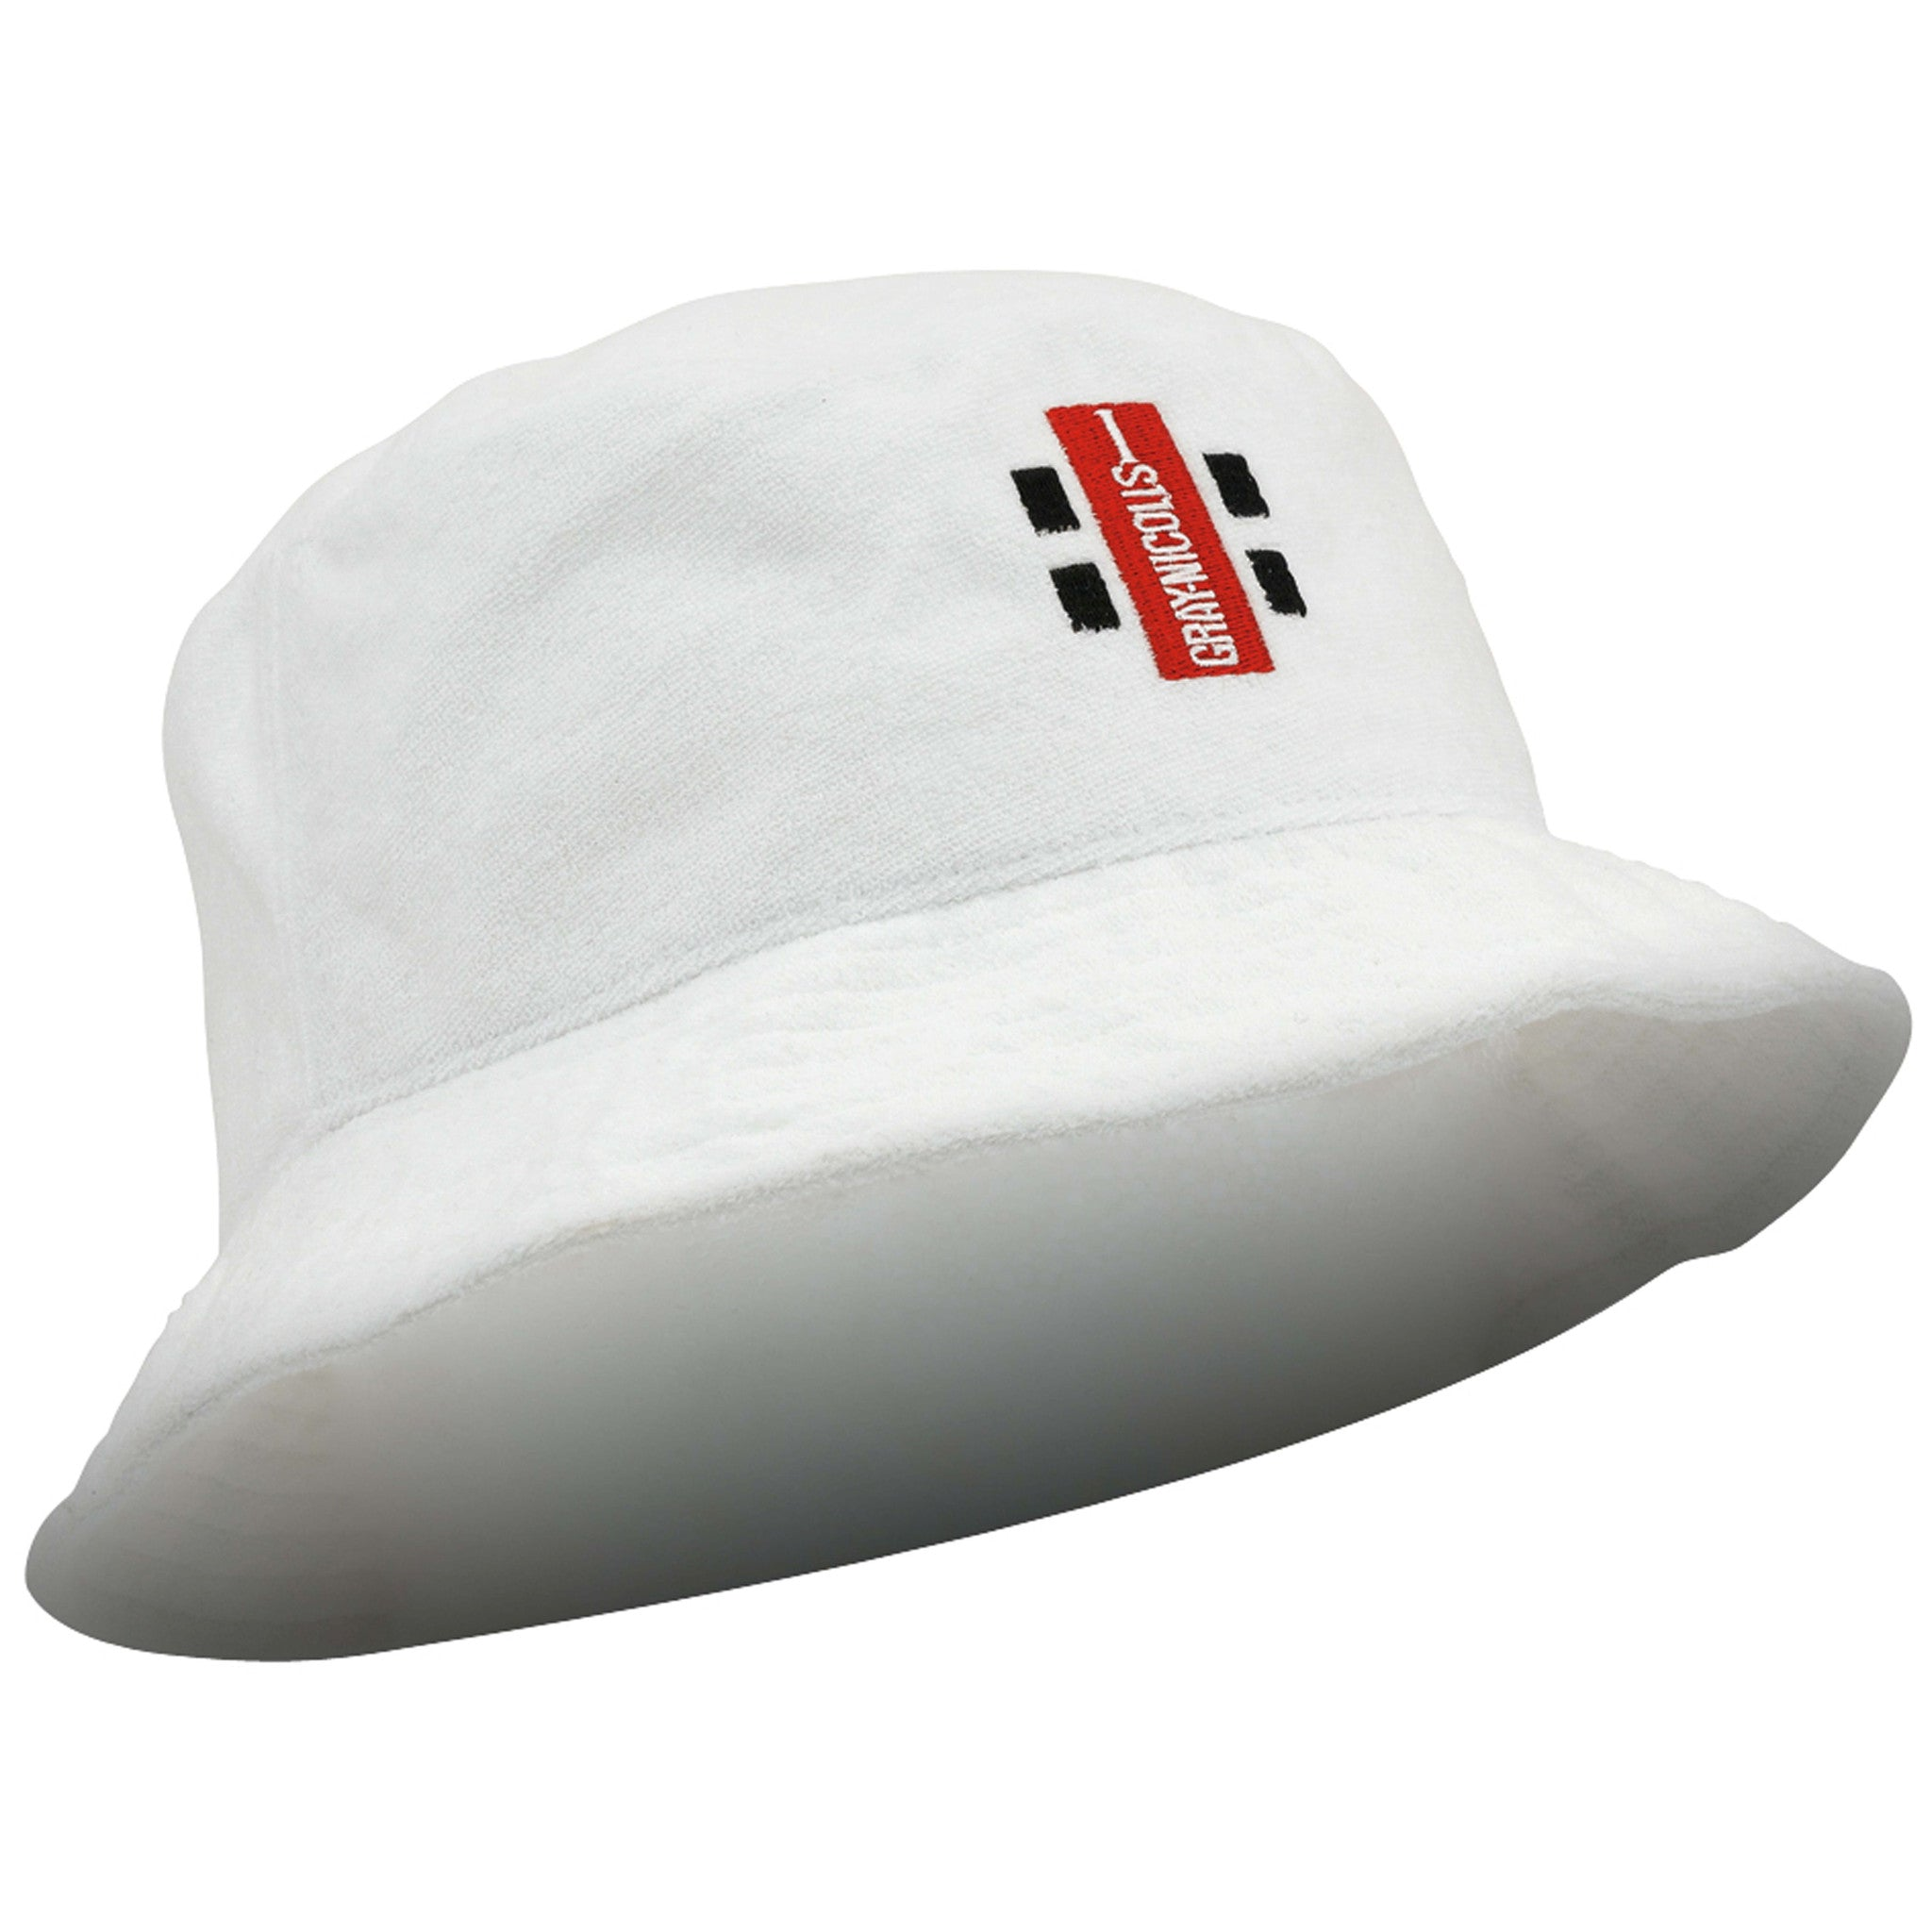 4aa9219684b553 Towelling Hat - Gray-Nicolls – The Cricket Warehouse